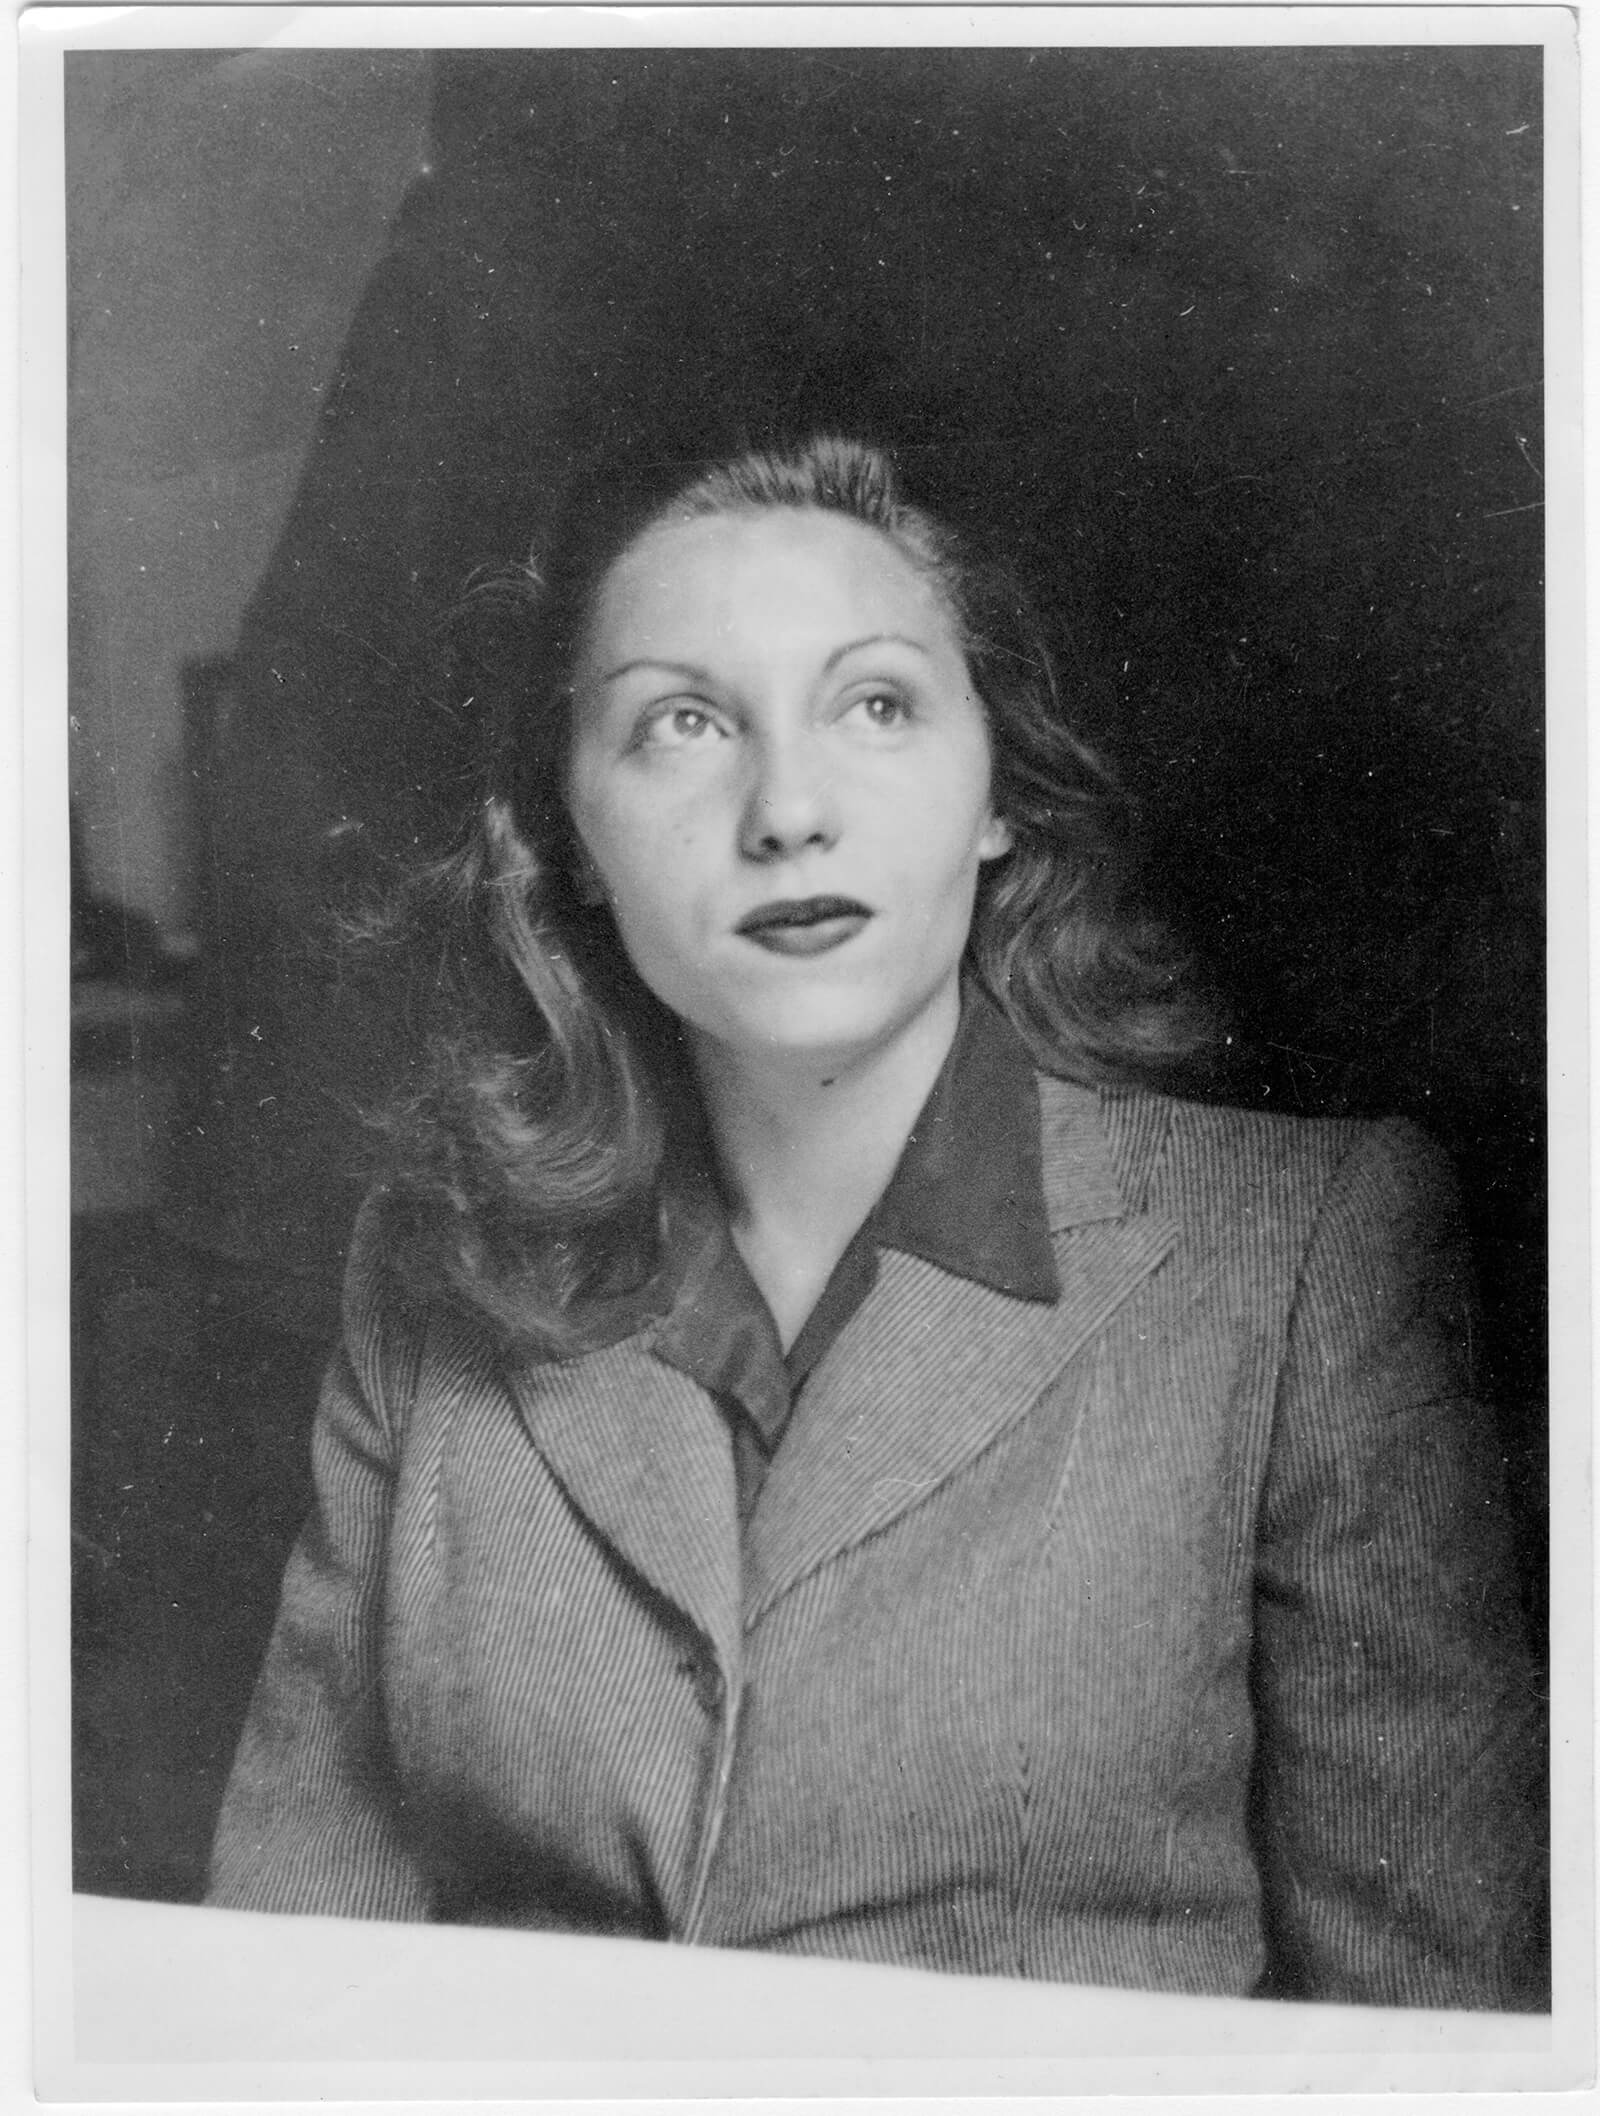 Clarice Lispector's hour and turn